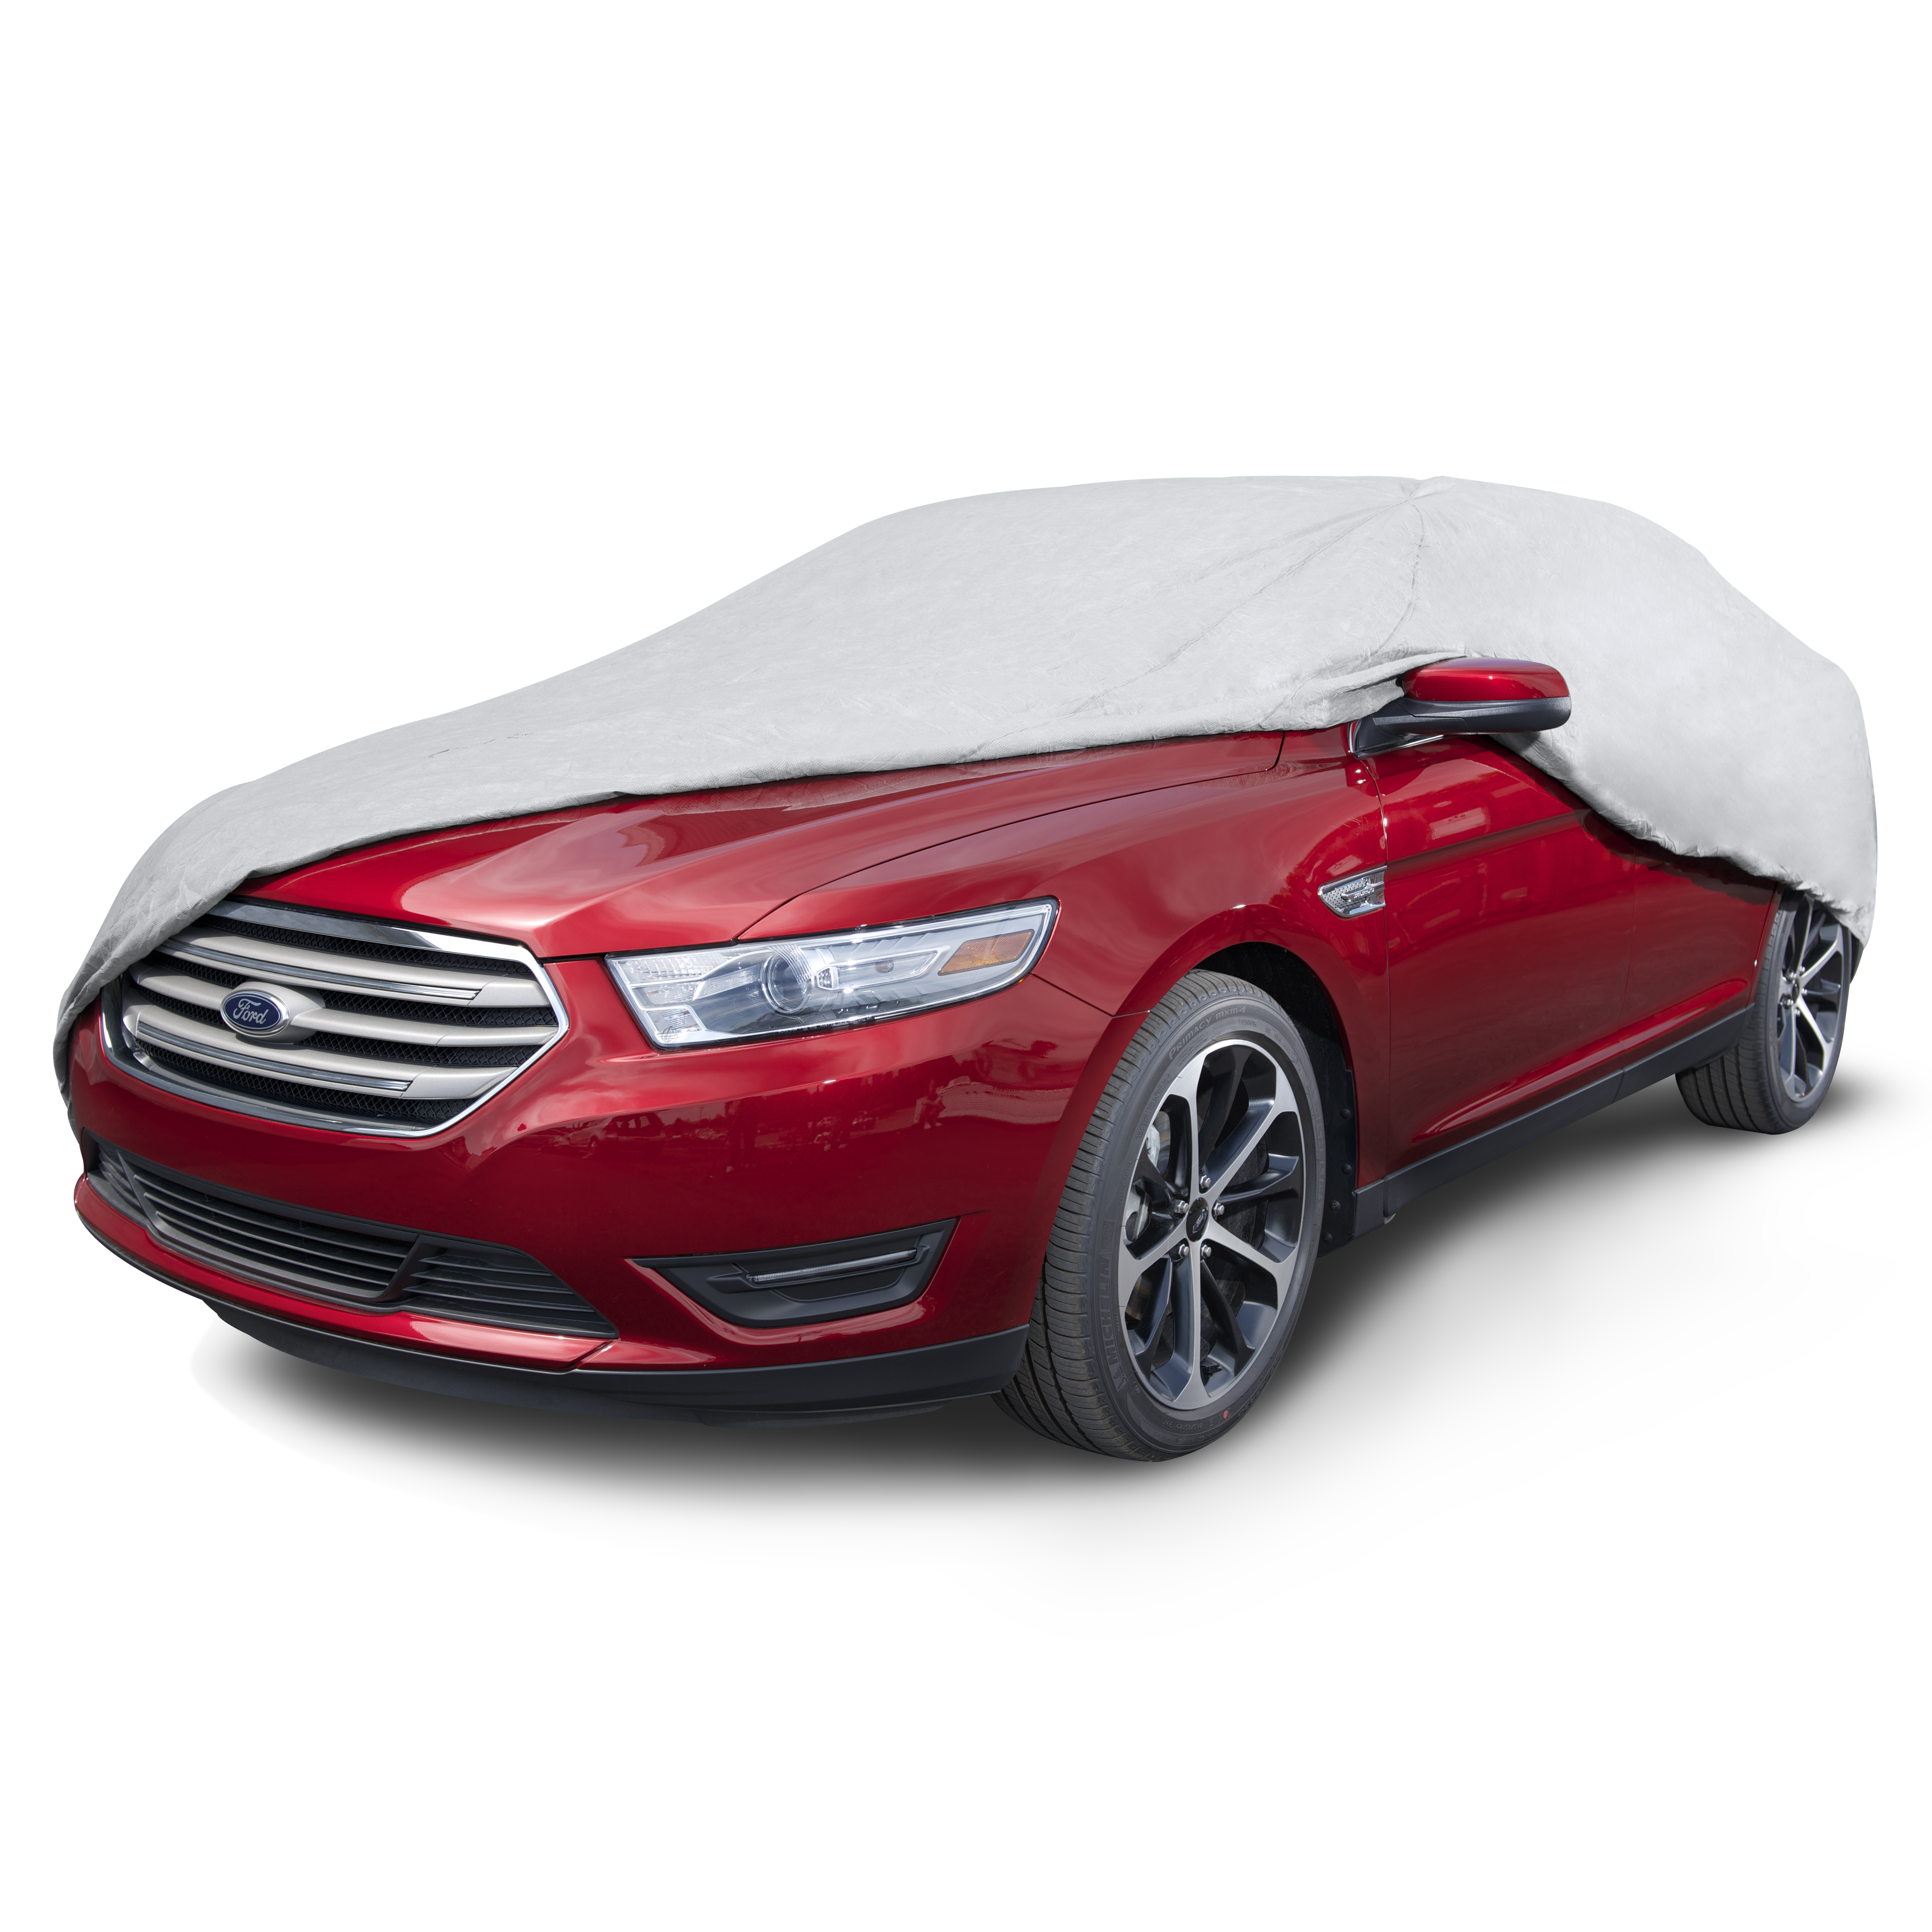 Budge Duro Car Cover, Basic Outdoor Vehicle Protection, 3 Layer Semi-Custom Fit